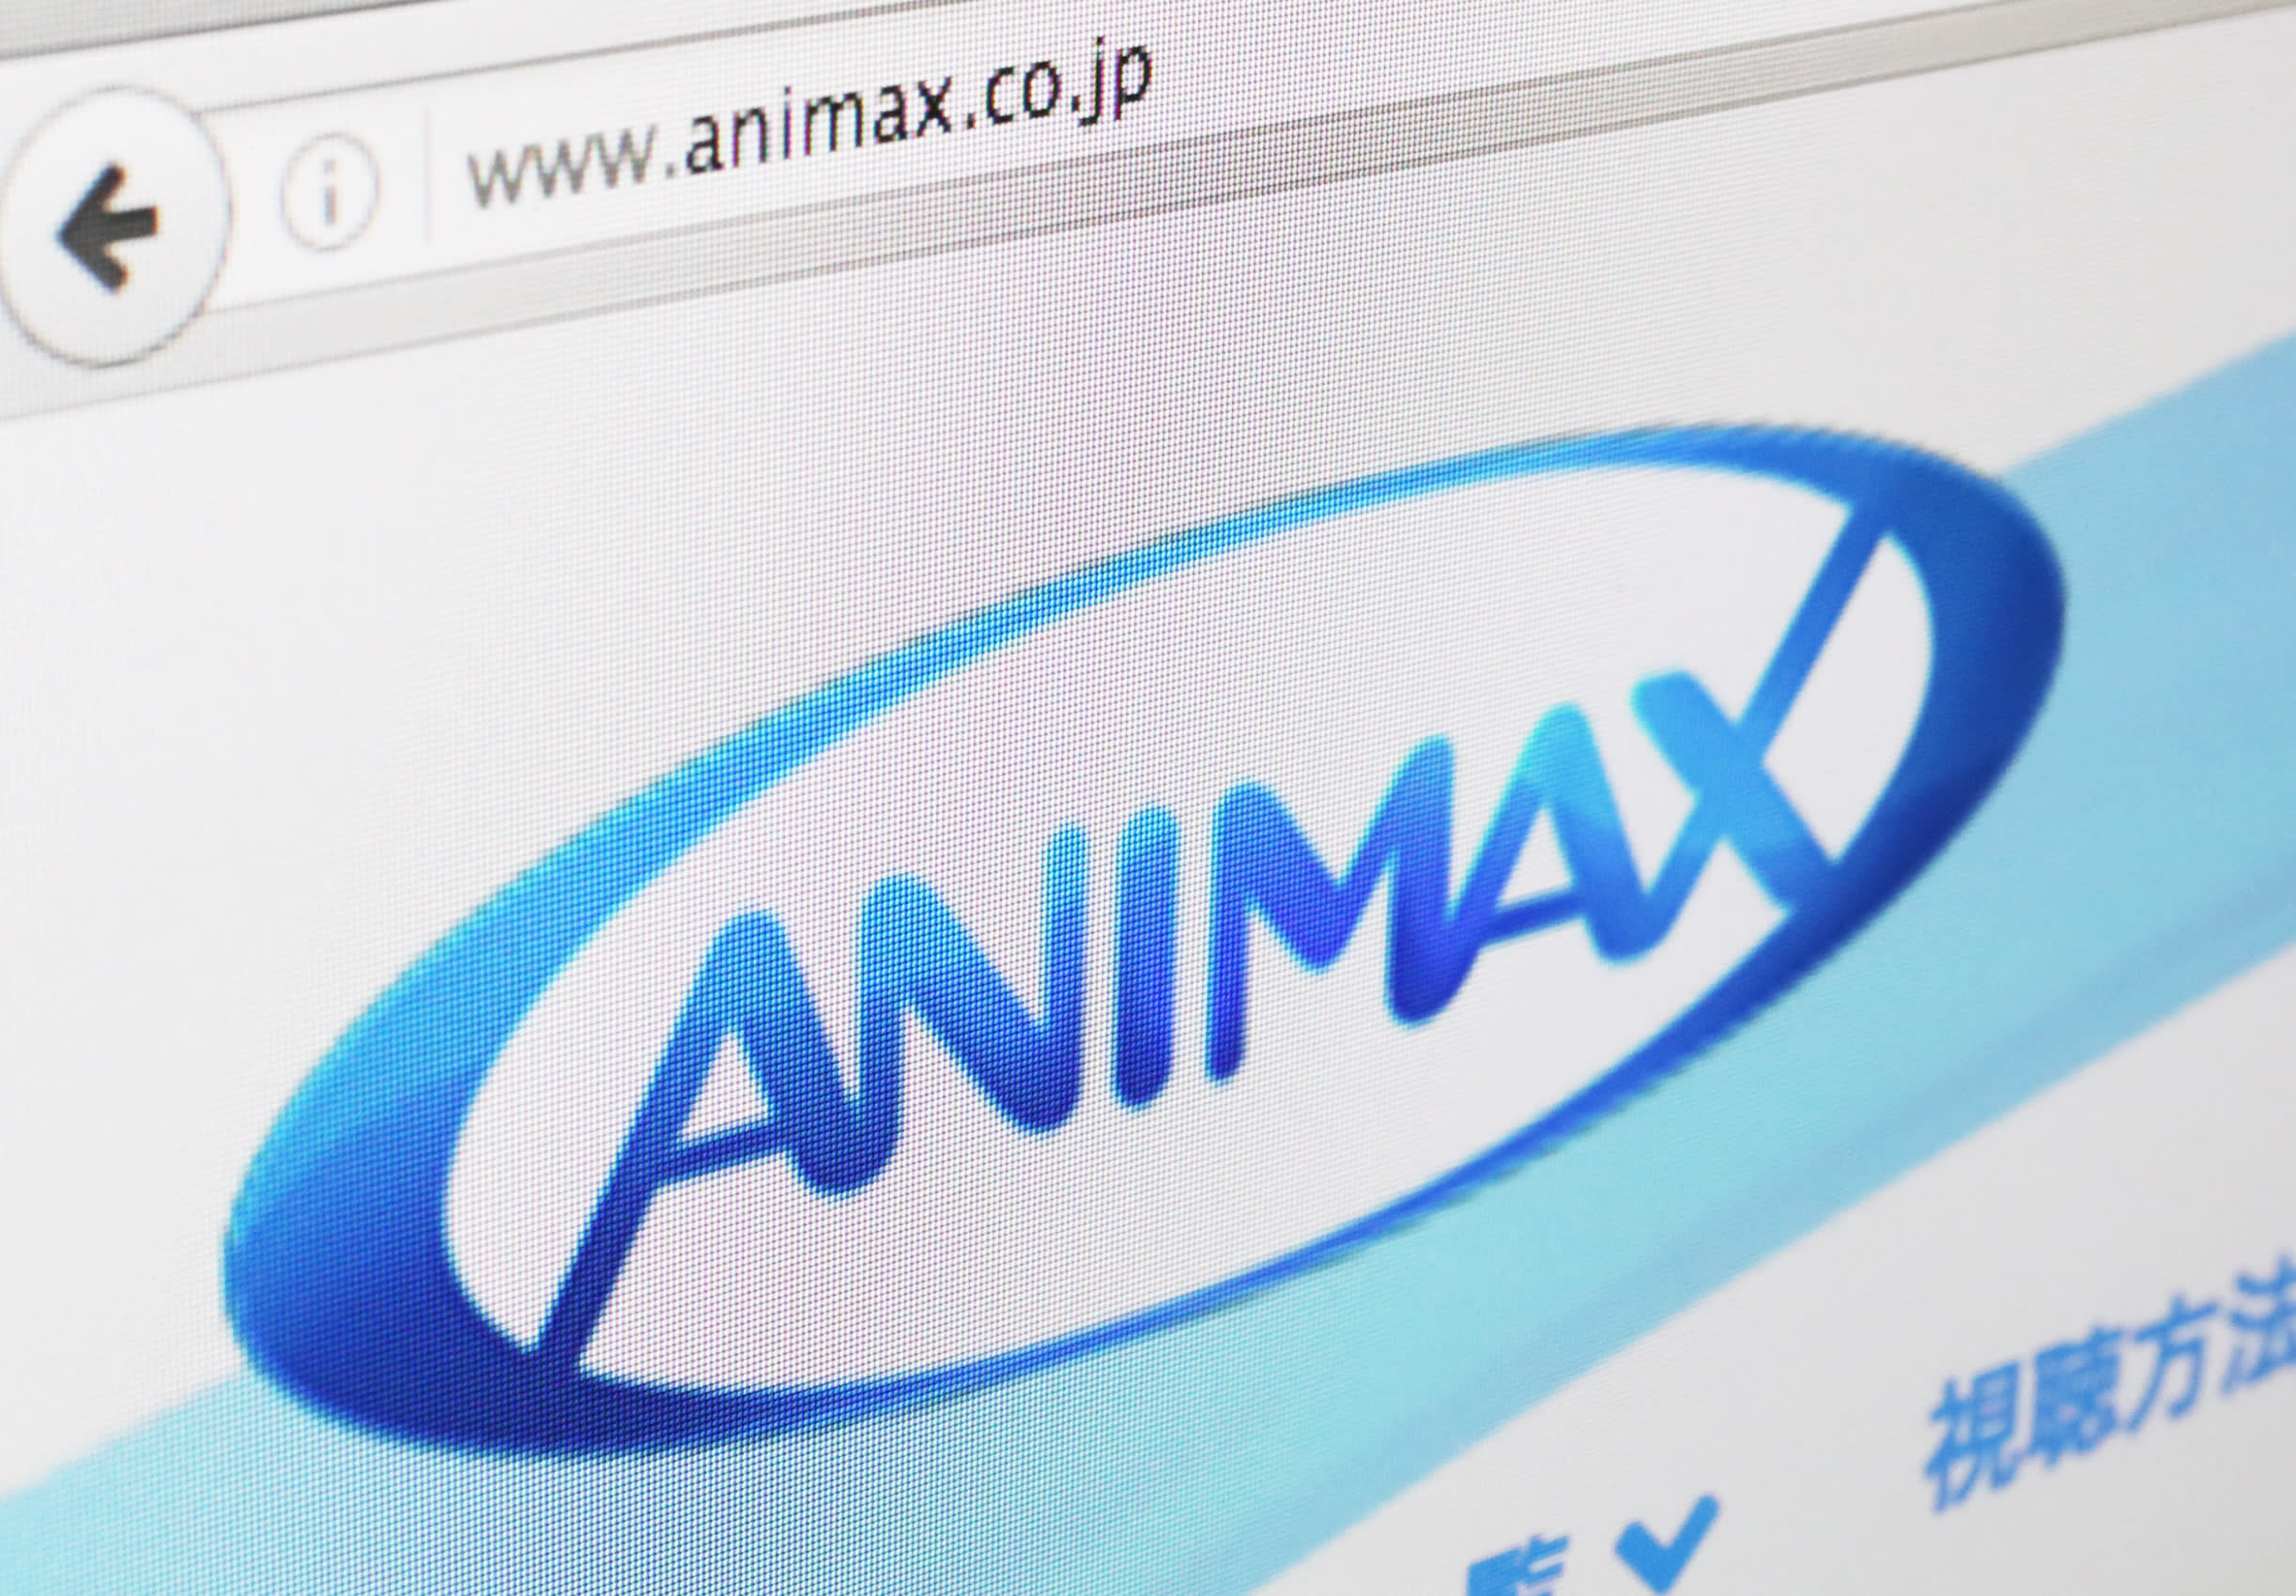 Animax japans largest animation only tv channel is affiliated with sony